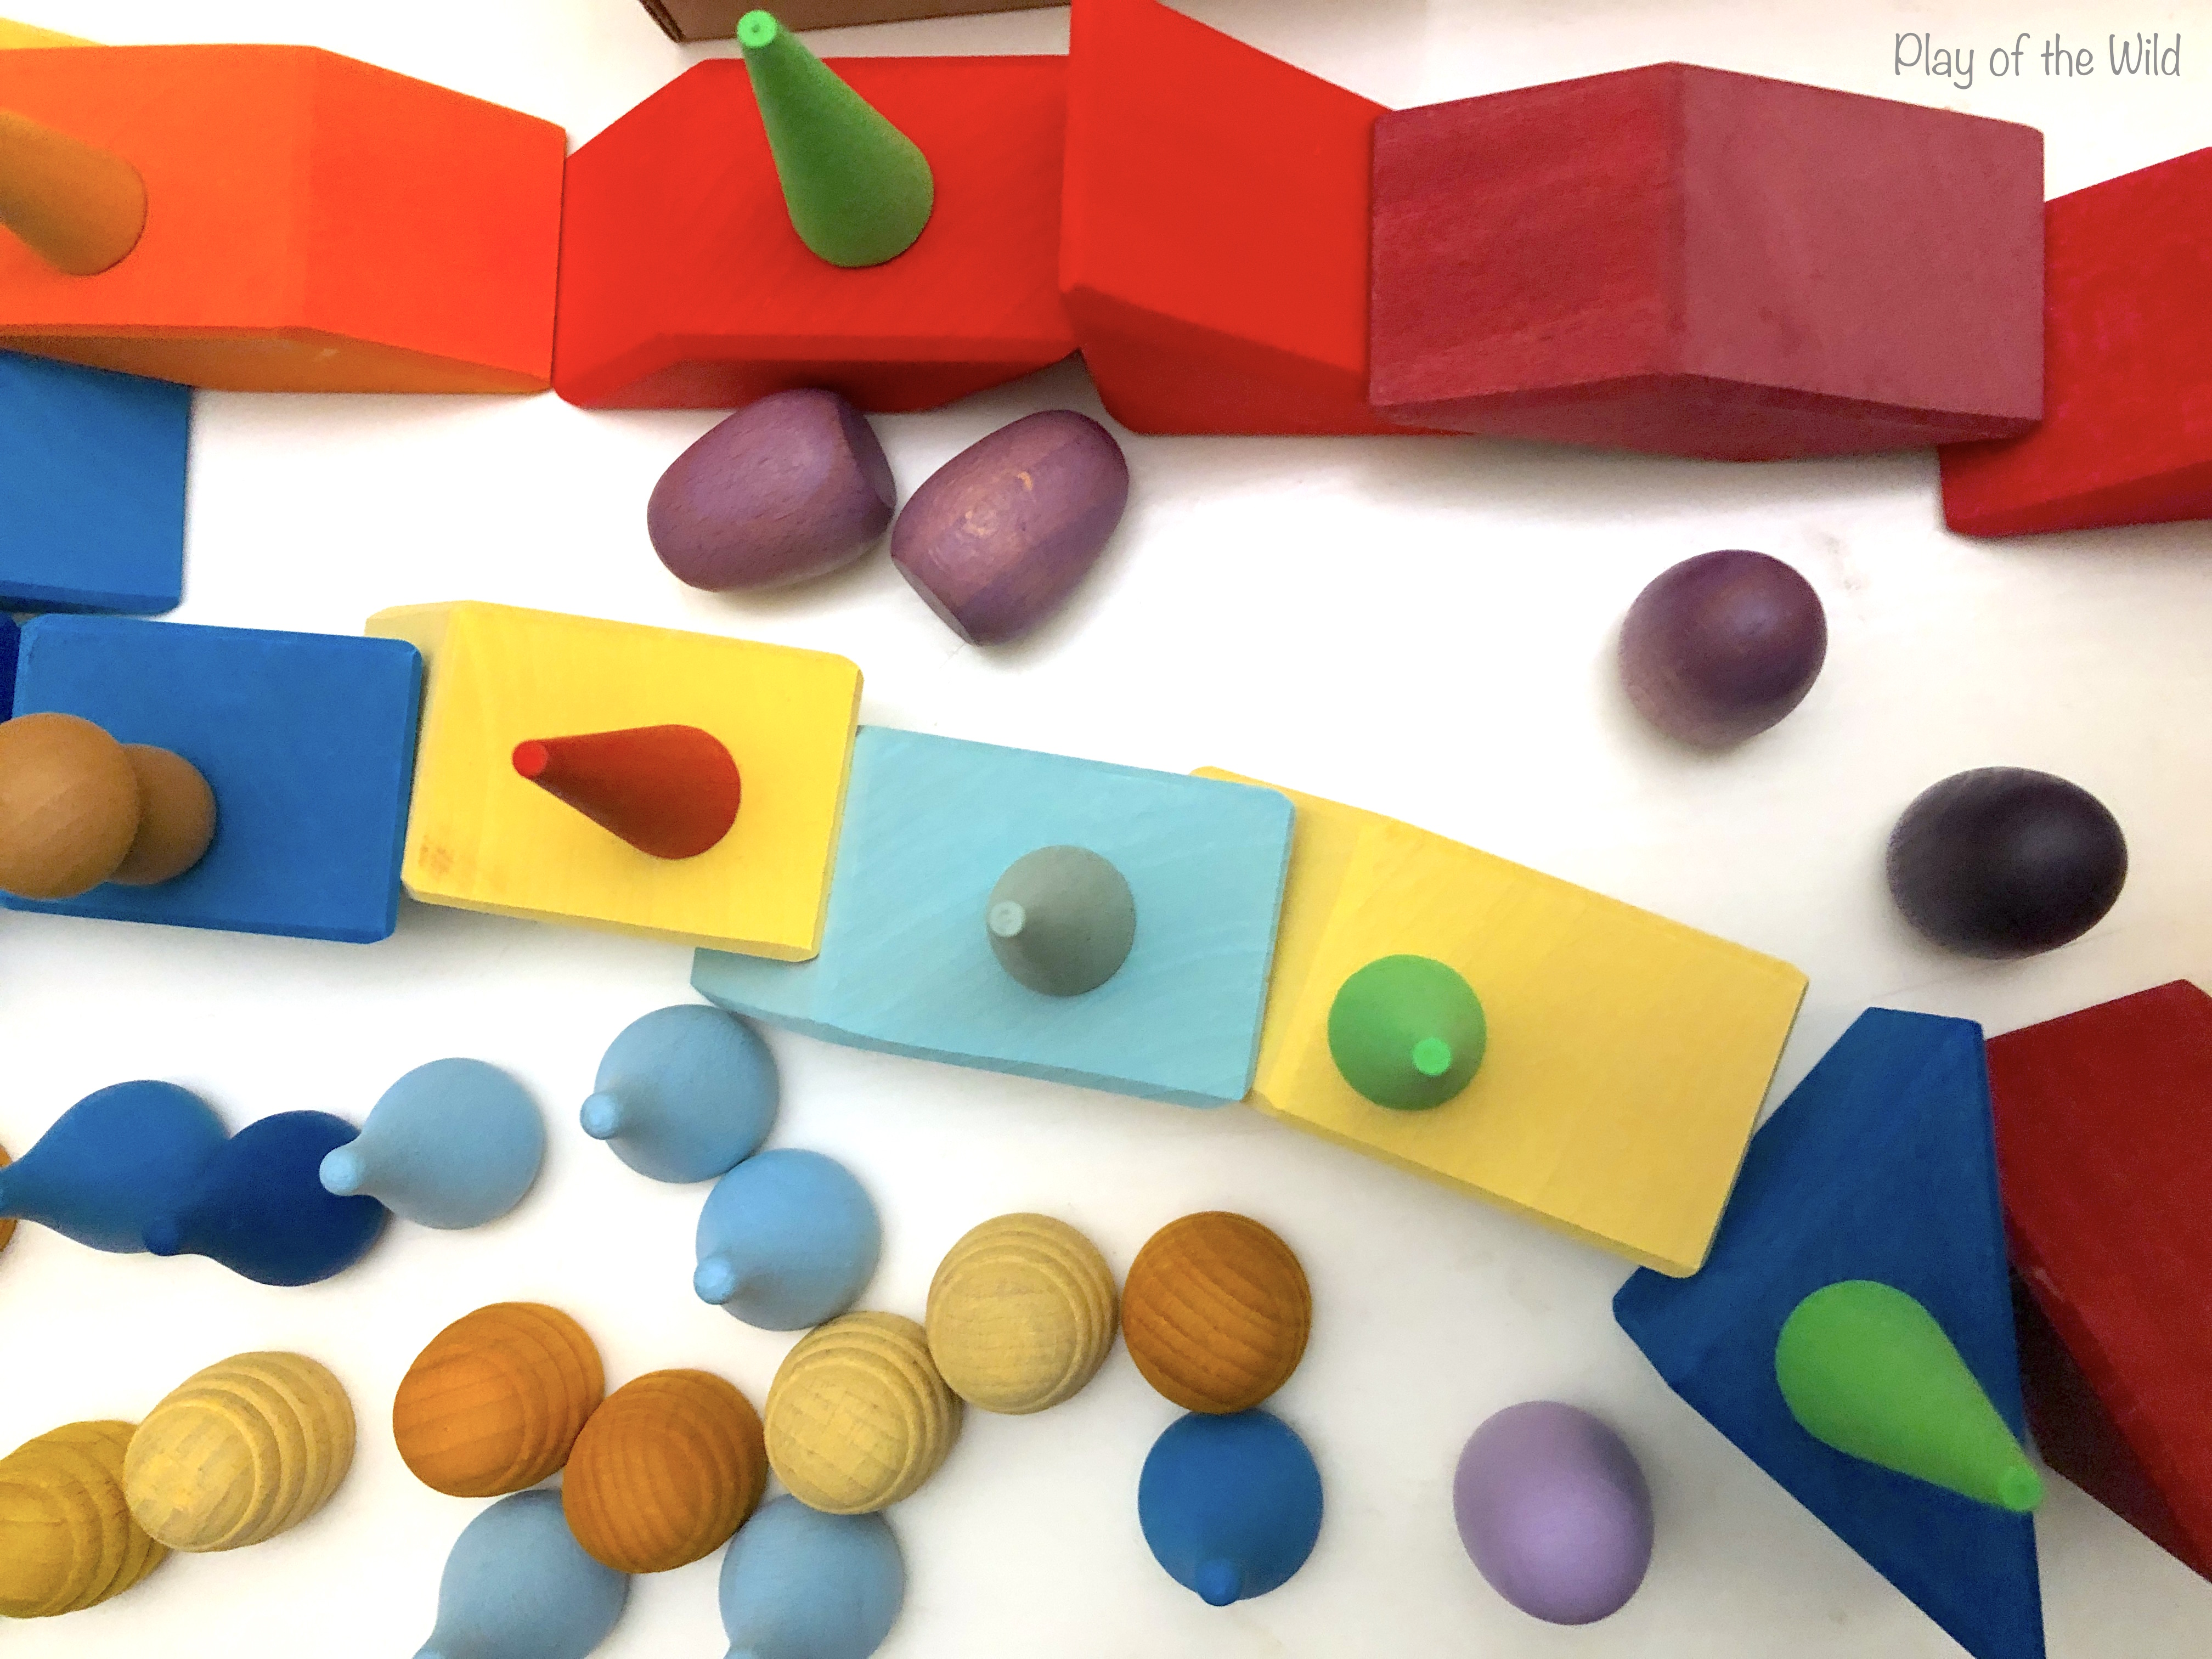 Loose parts play ideas for toddlers, block play